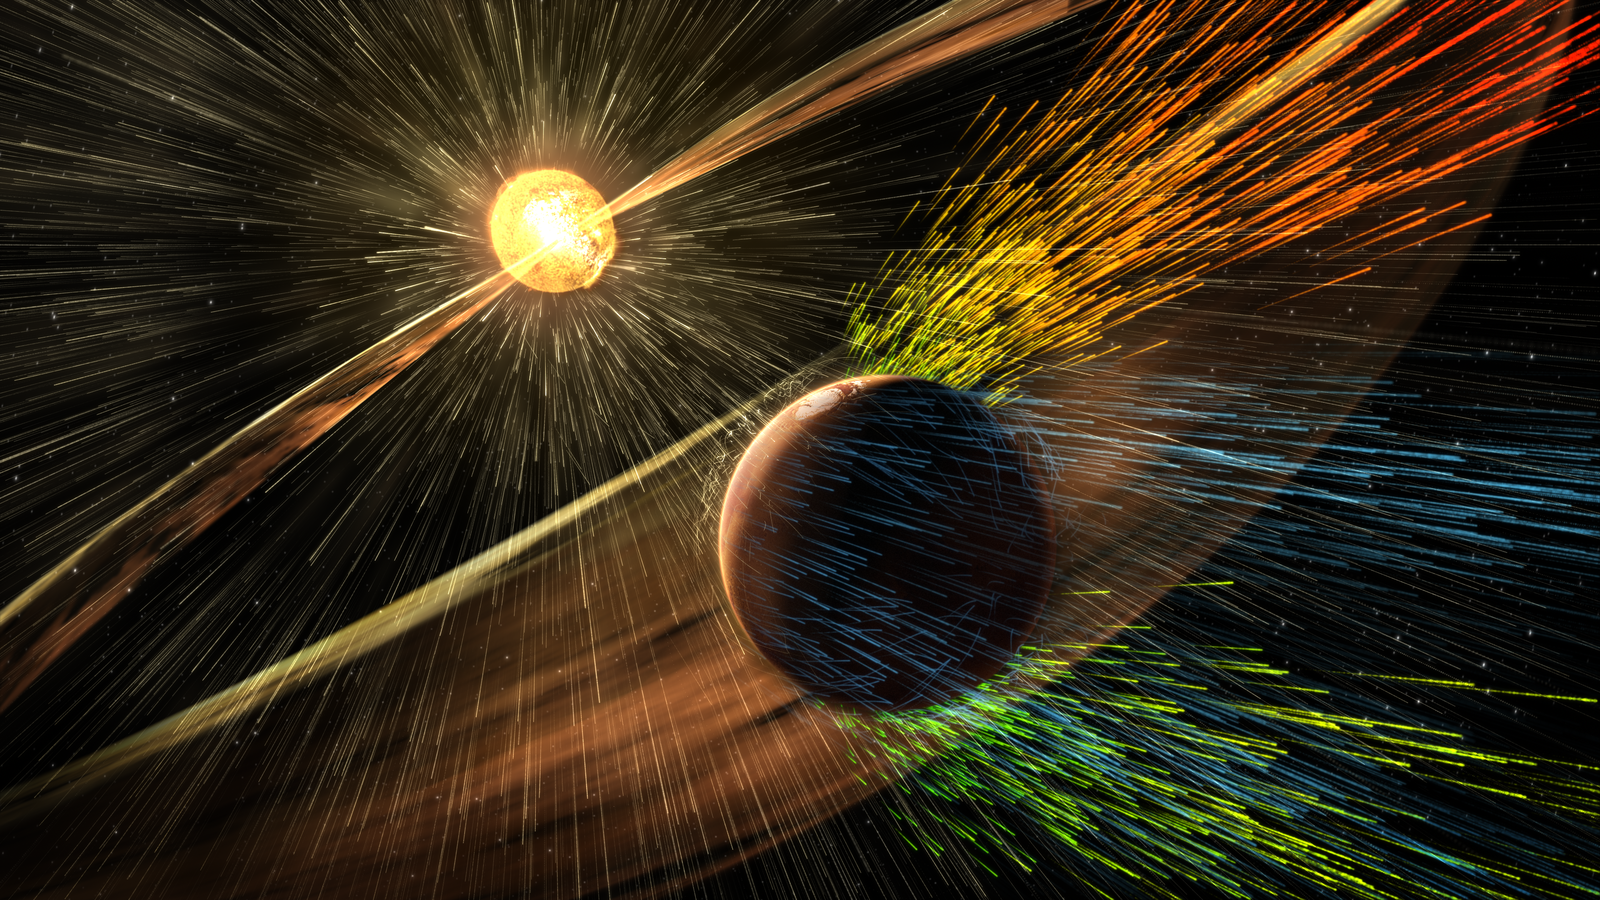 This illustration depicts charged particles from a solar storm stripping away charged particles of Mars' atmosphere, one of the processes of Martian atmosphere loss studied by NASA's MAVEN mission, beginning in 2014. Unlike Earth, Mars lacks a global magnetic field that could deflect charged particles emanating from the Sun.